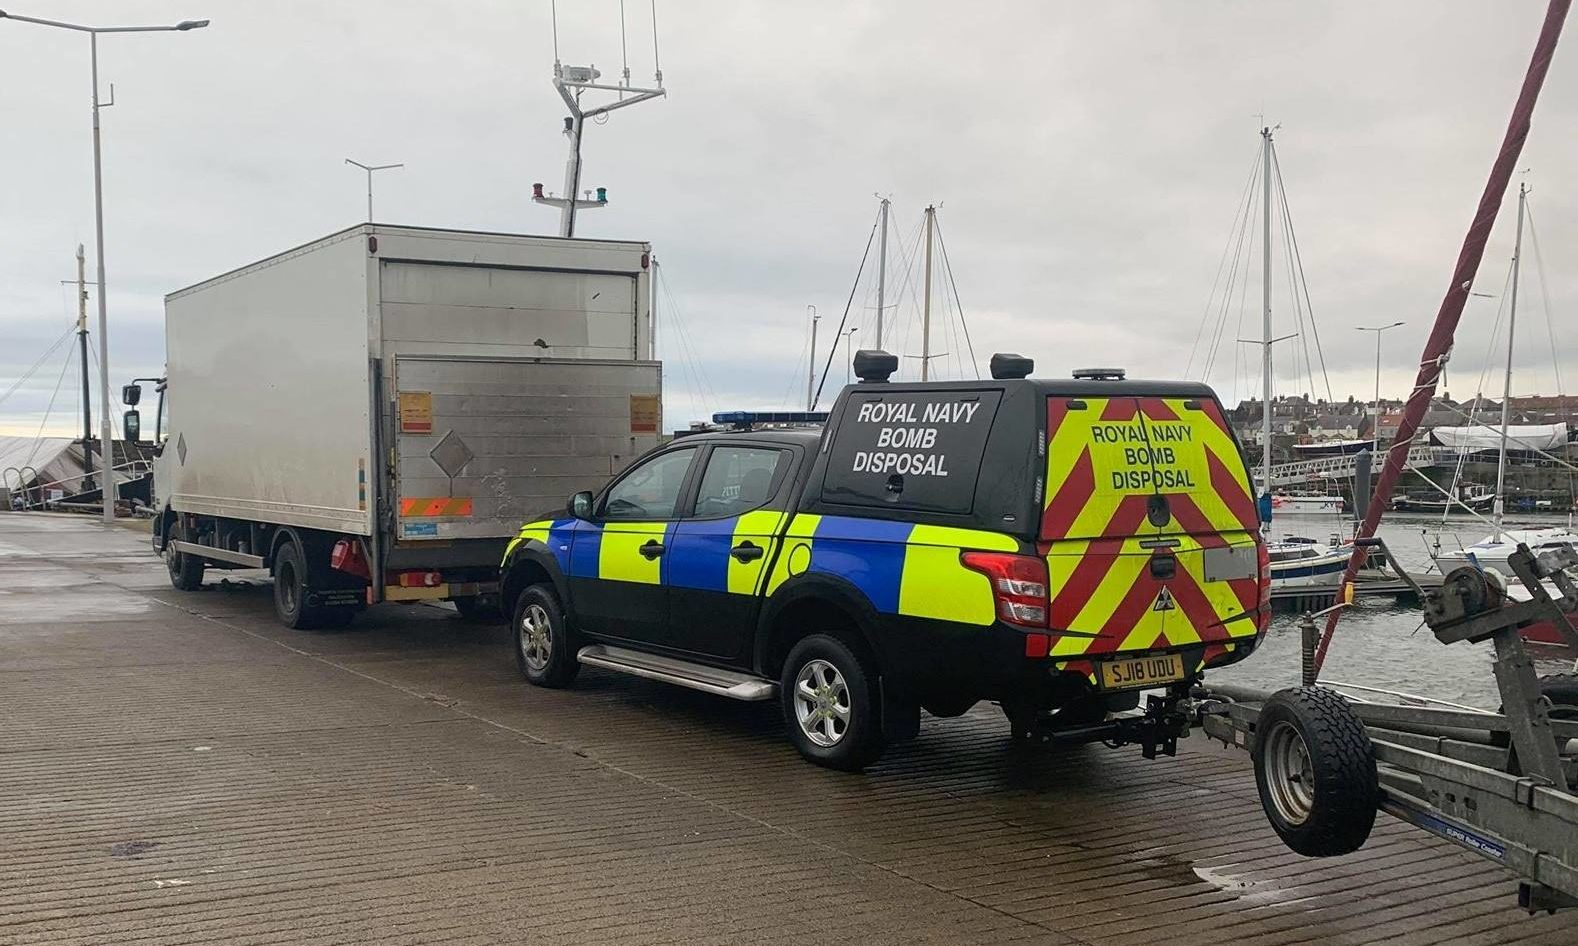 Emergency services were called to Pittenweem harbour